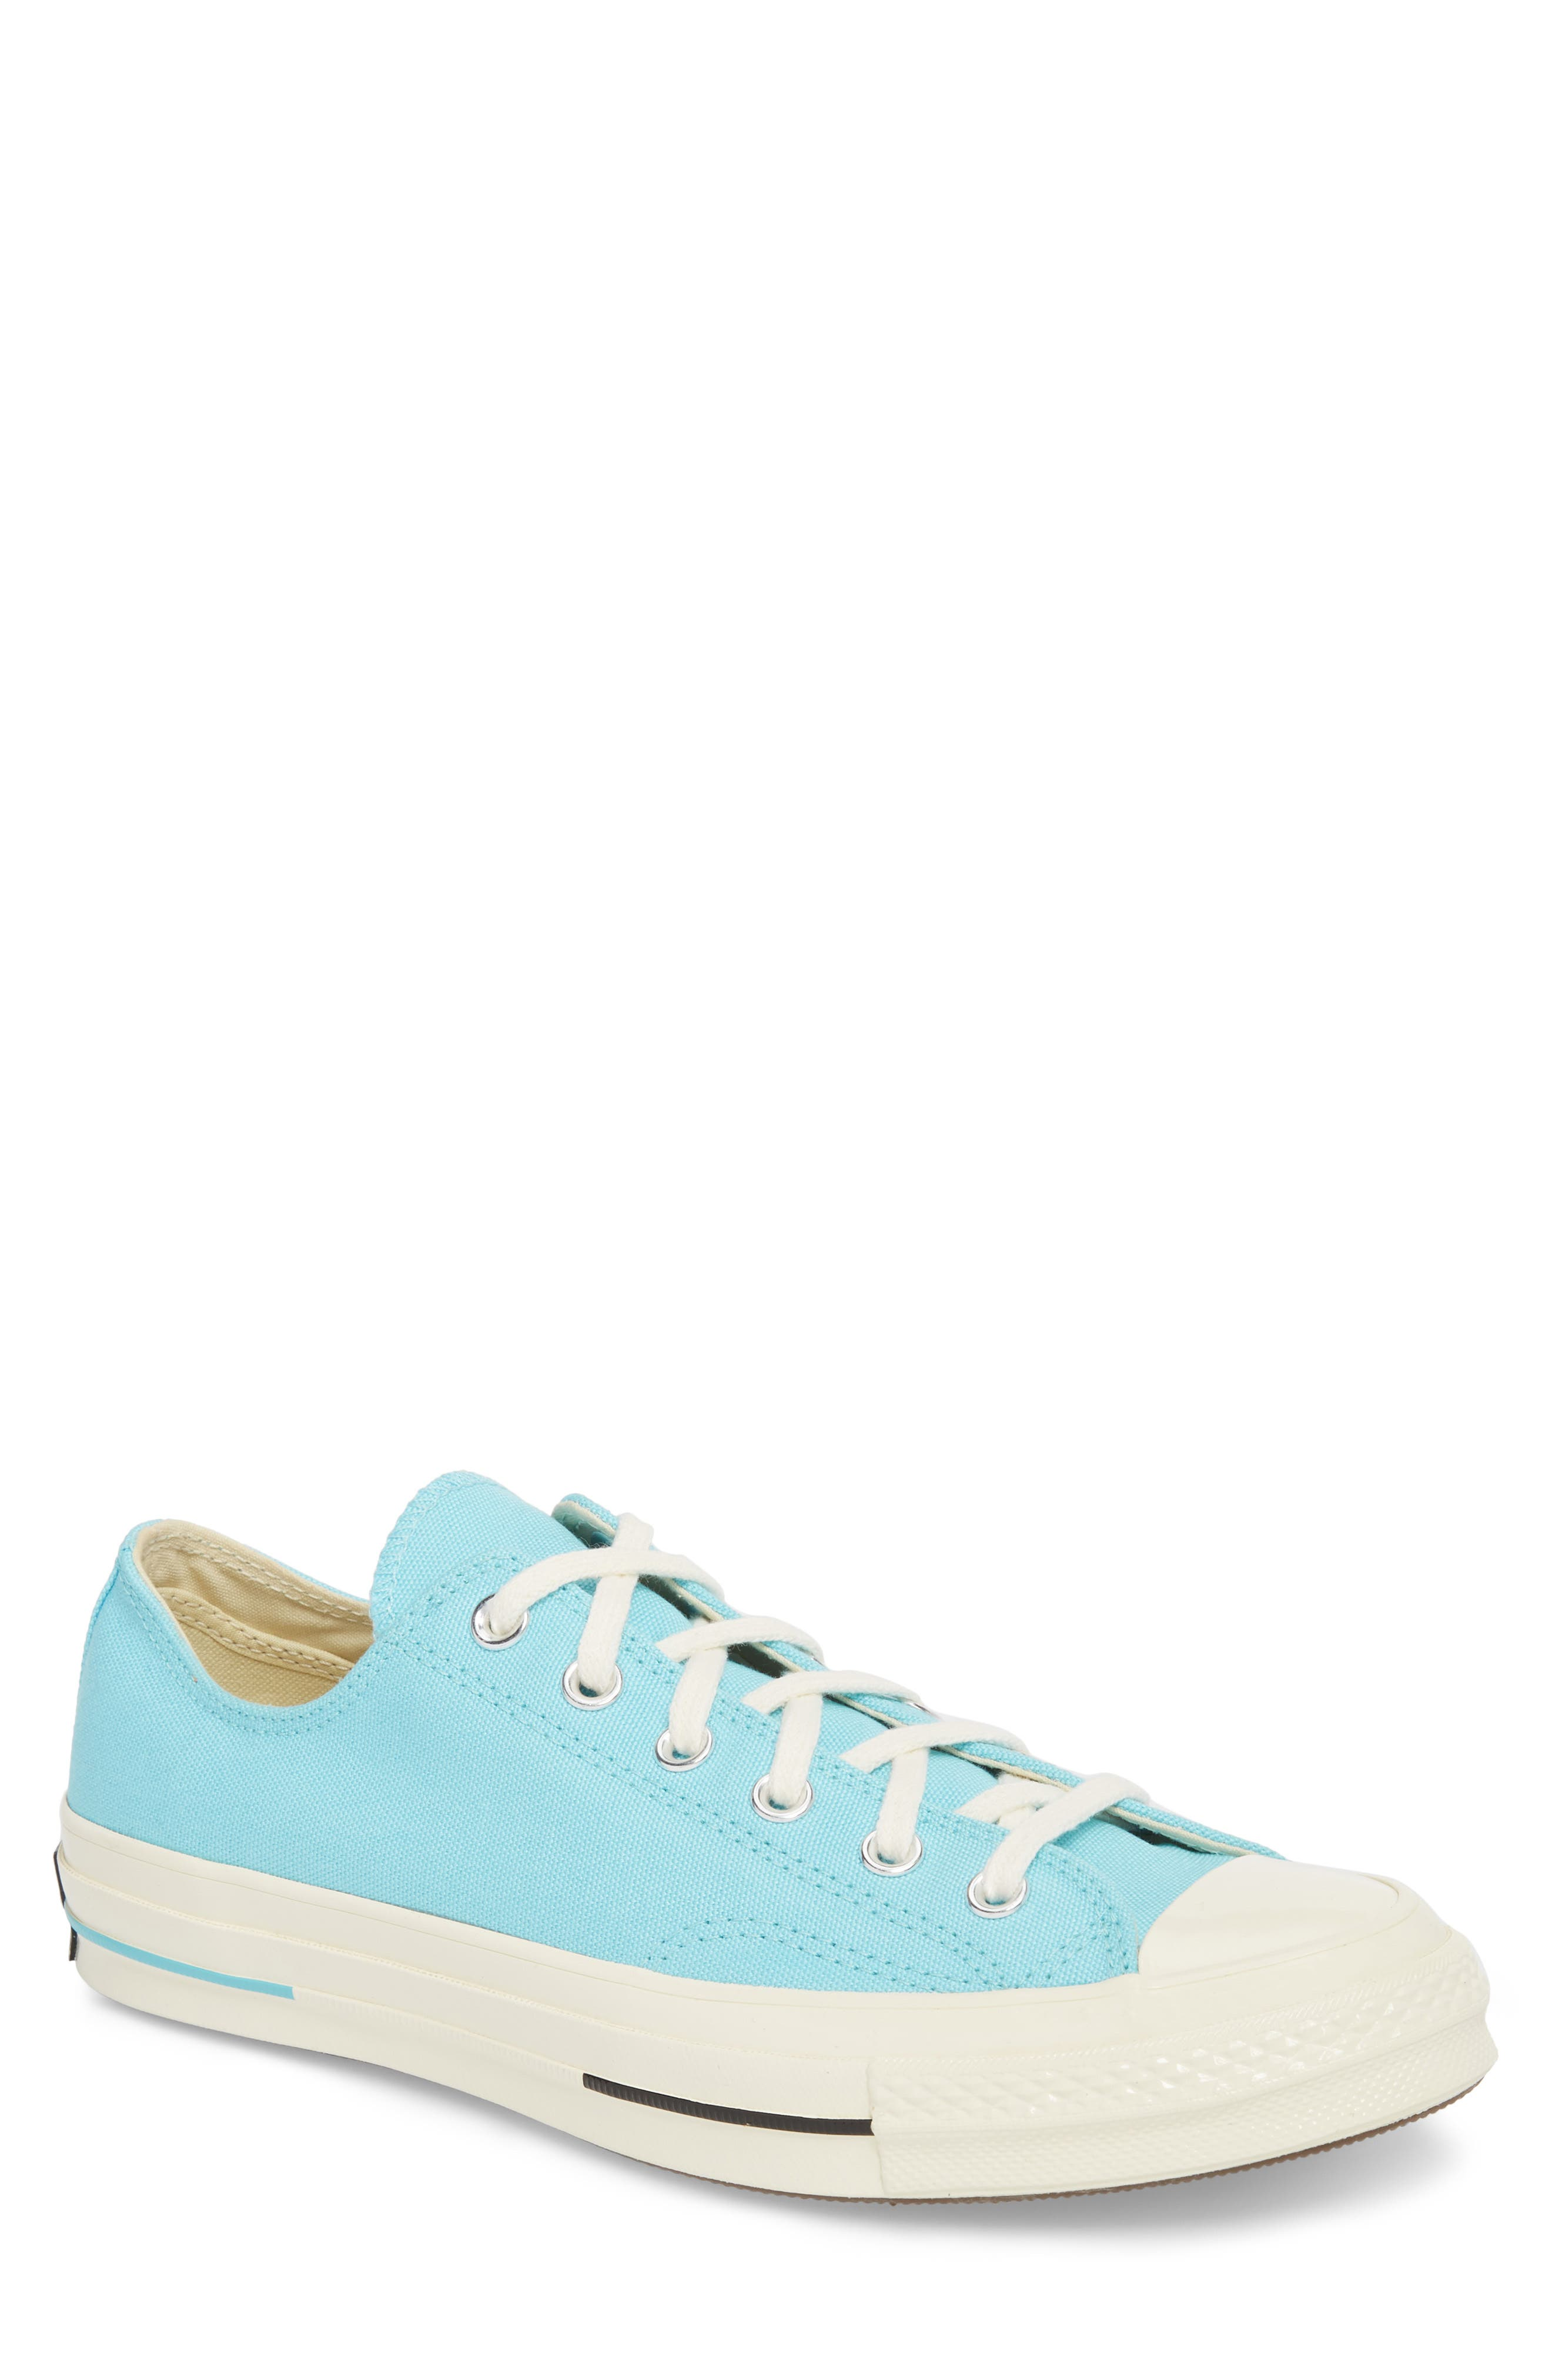 Chuck Taylor<sup>®</sup> All Star<sup>®</sup> 70 Brights Low Top Sneaker,                         Main,                         color, Beached Aqua